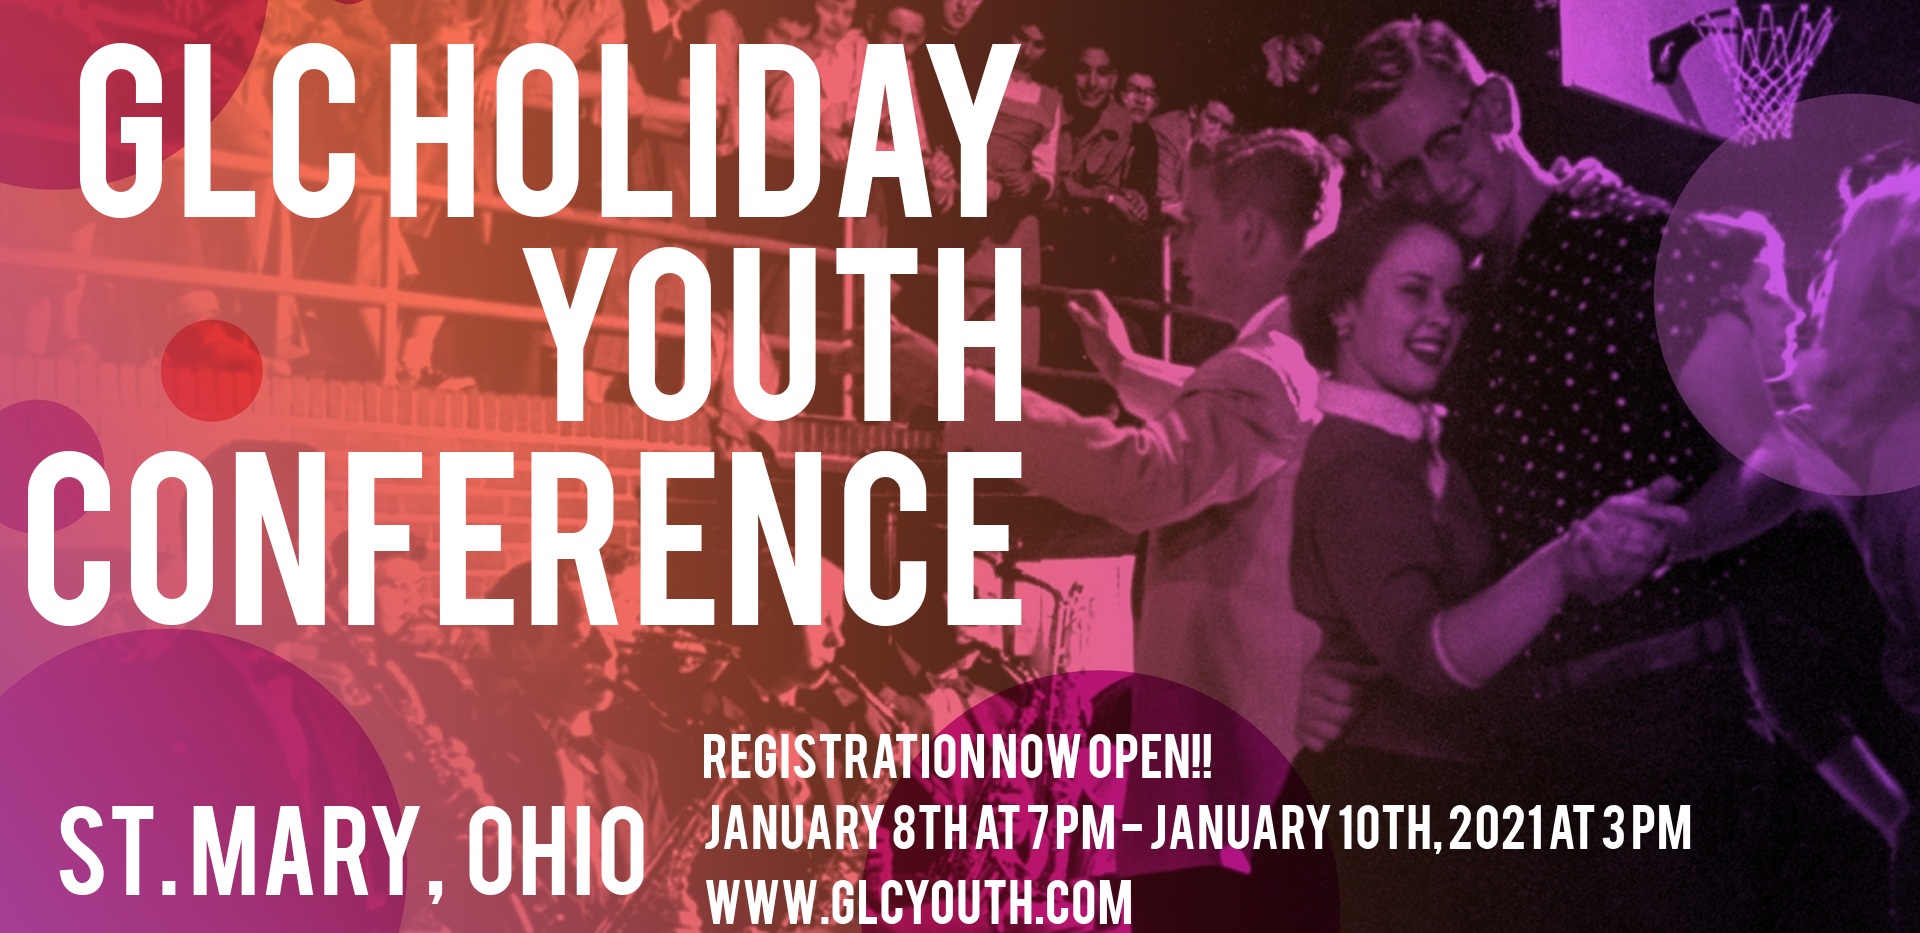 GLC Holiday Youth Conference.png